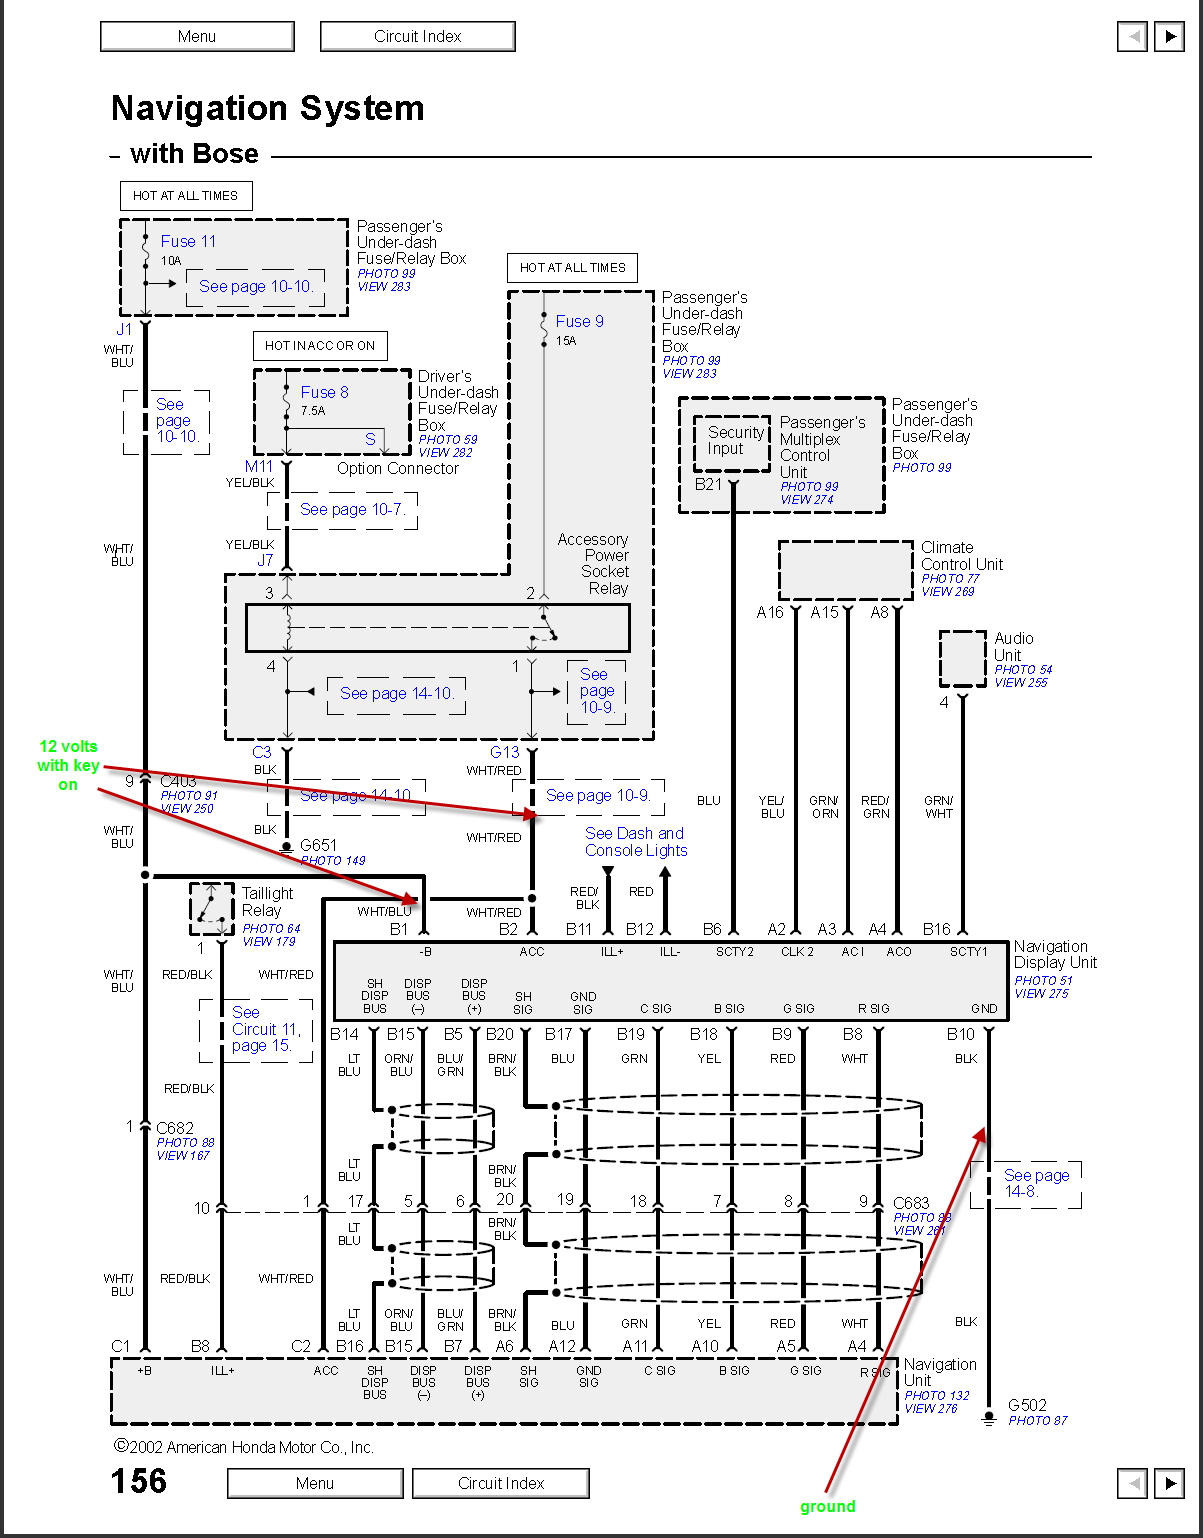 [DIAGRAM_38YU]  DIAGRAM] 2004 Acura Mdx Wiring Diagram FULL Version HD Quality Wiring  Diagram - 191458.ACCNET.FR | 2004 Acura Tl Wiring Diagram |  | accnet.fr